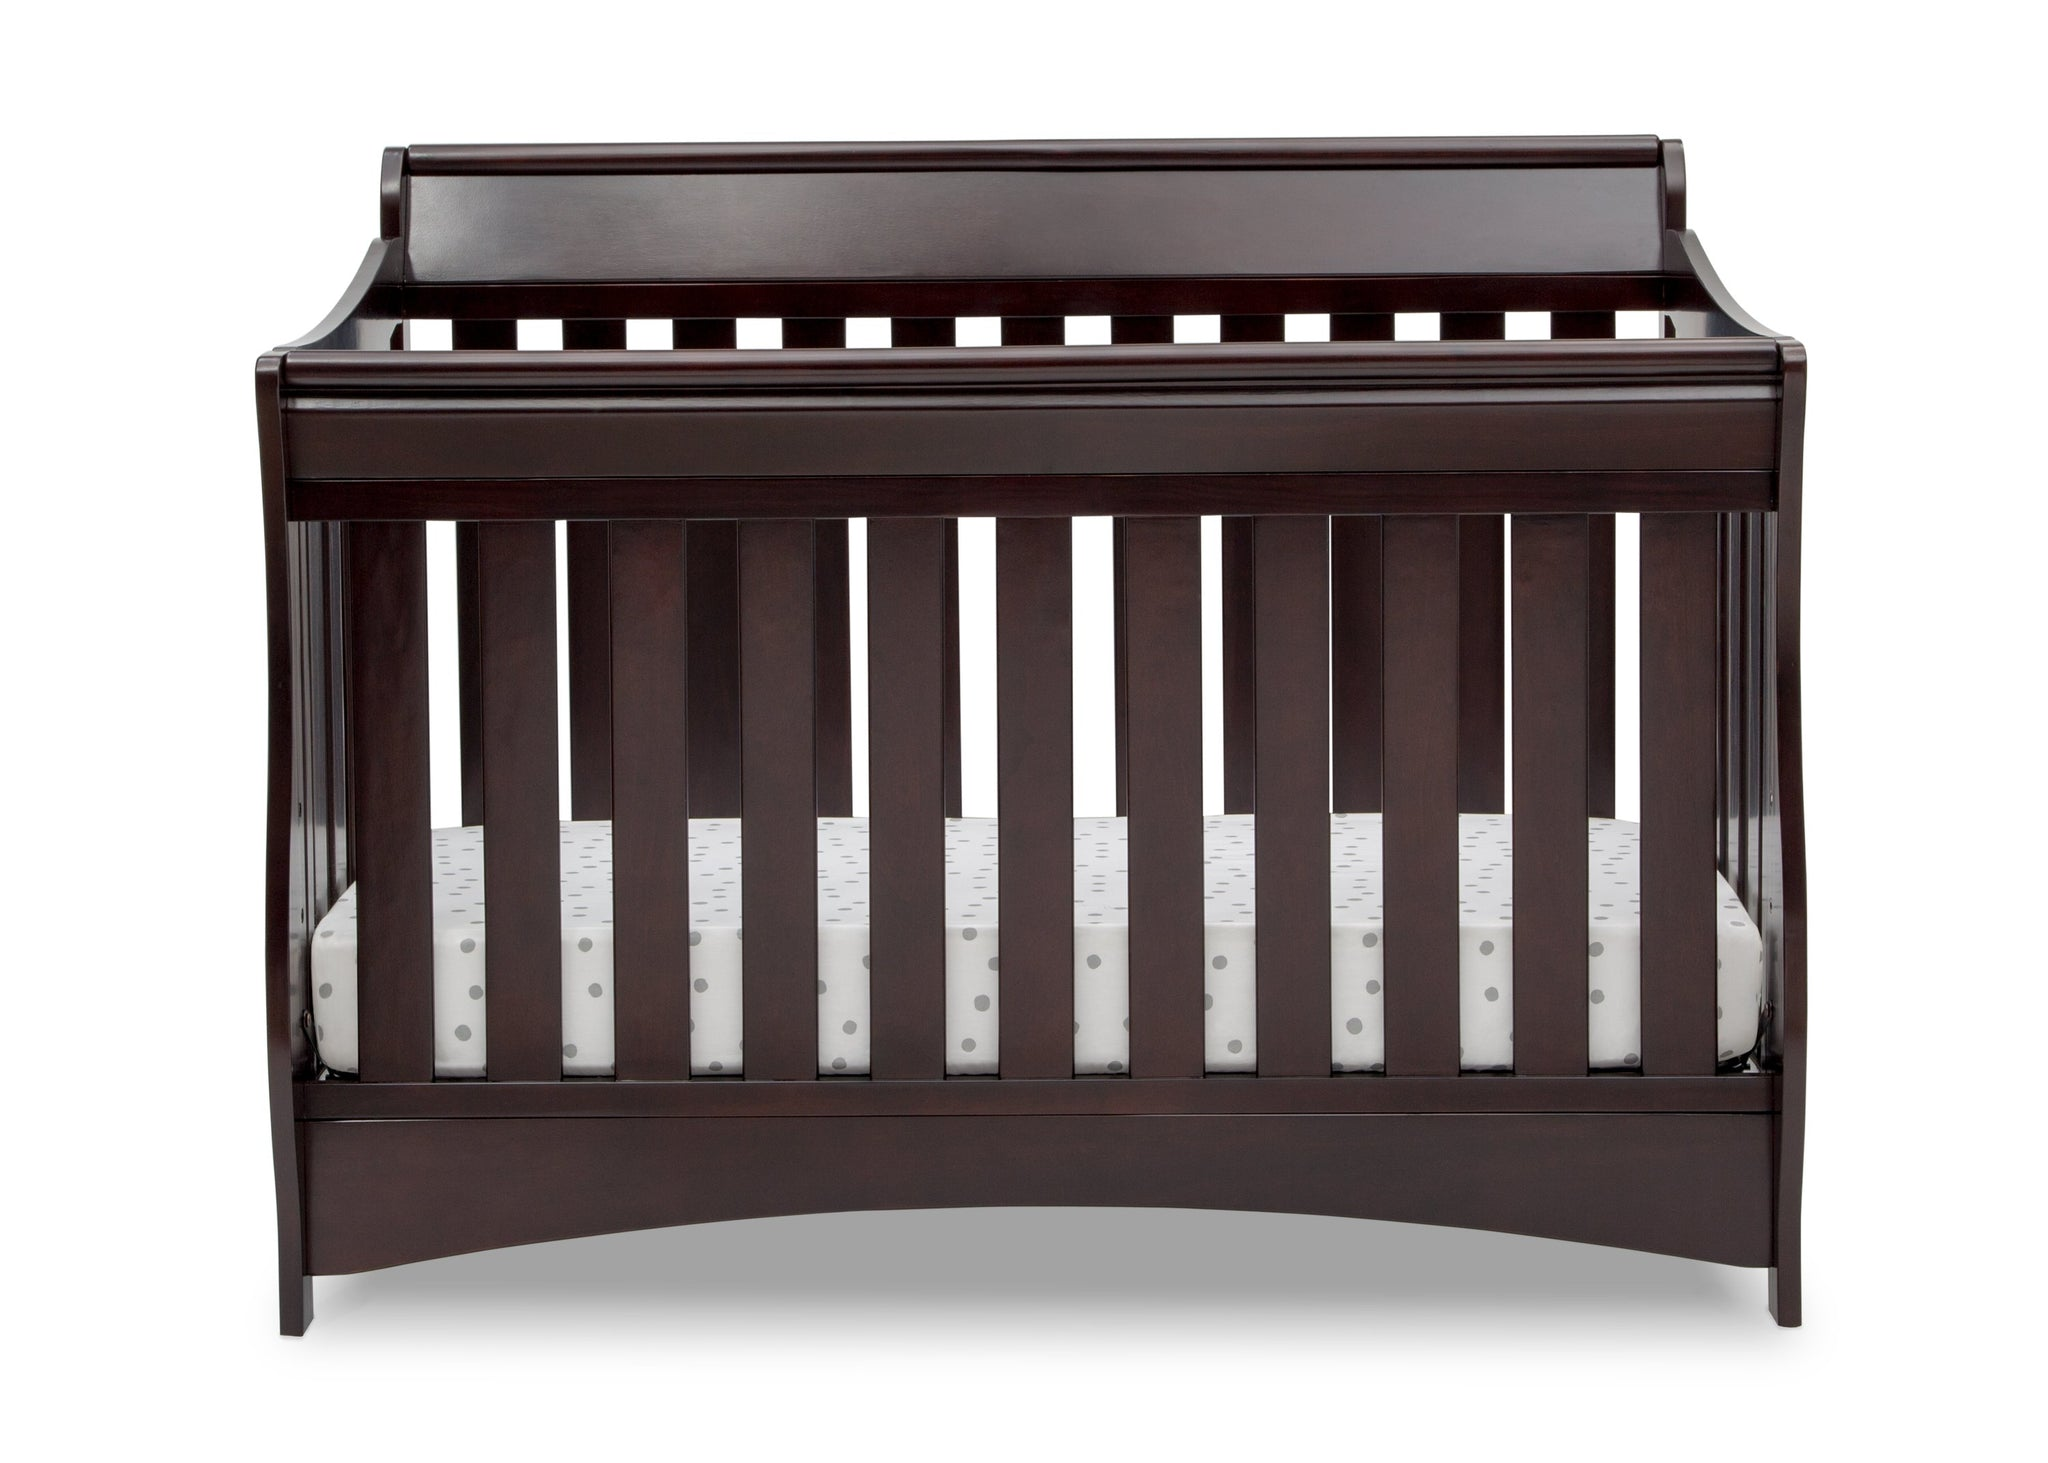 Delta Children Dark Chocolate (207) Bentley S Series Deluxe 6-in-1 Convertible Crib, Front Crib Silo View